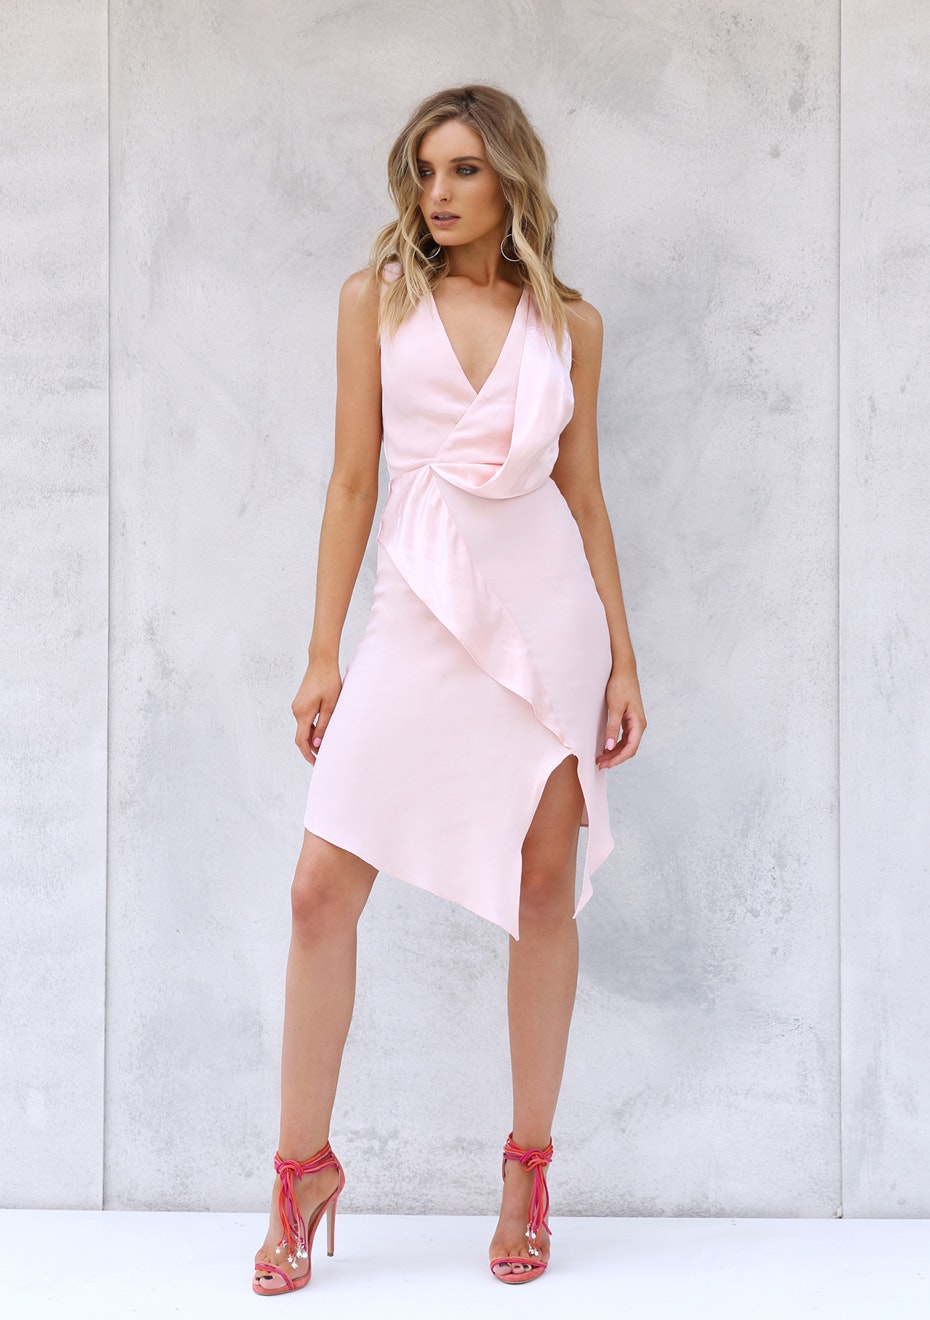 Madison - JOSIE DRESS - PINK